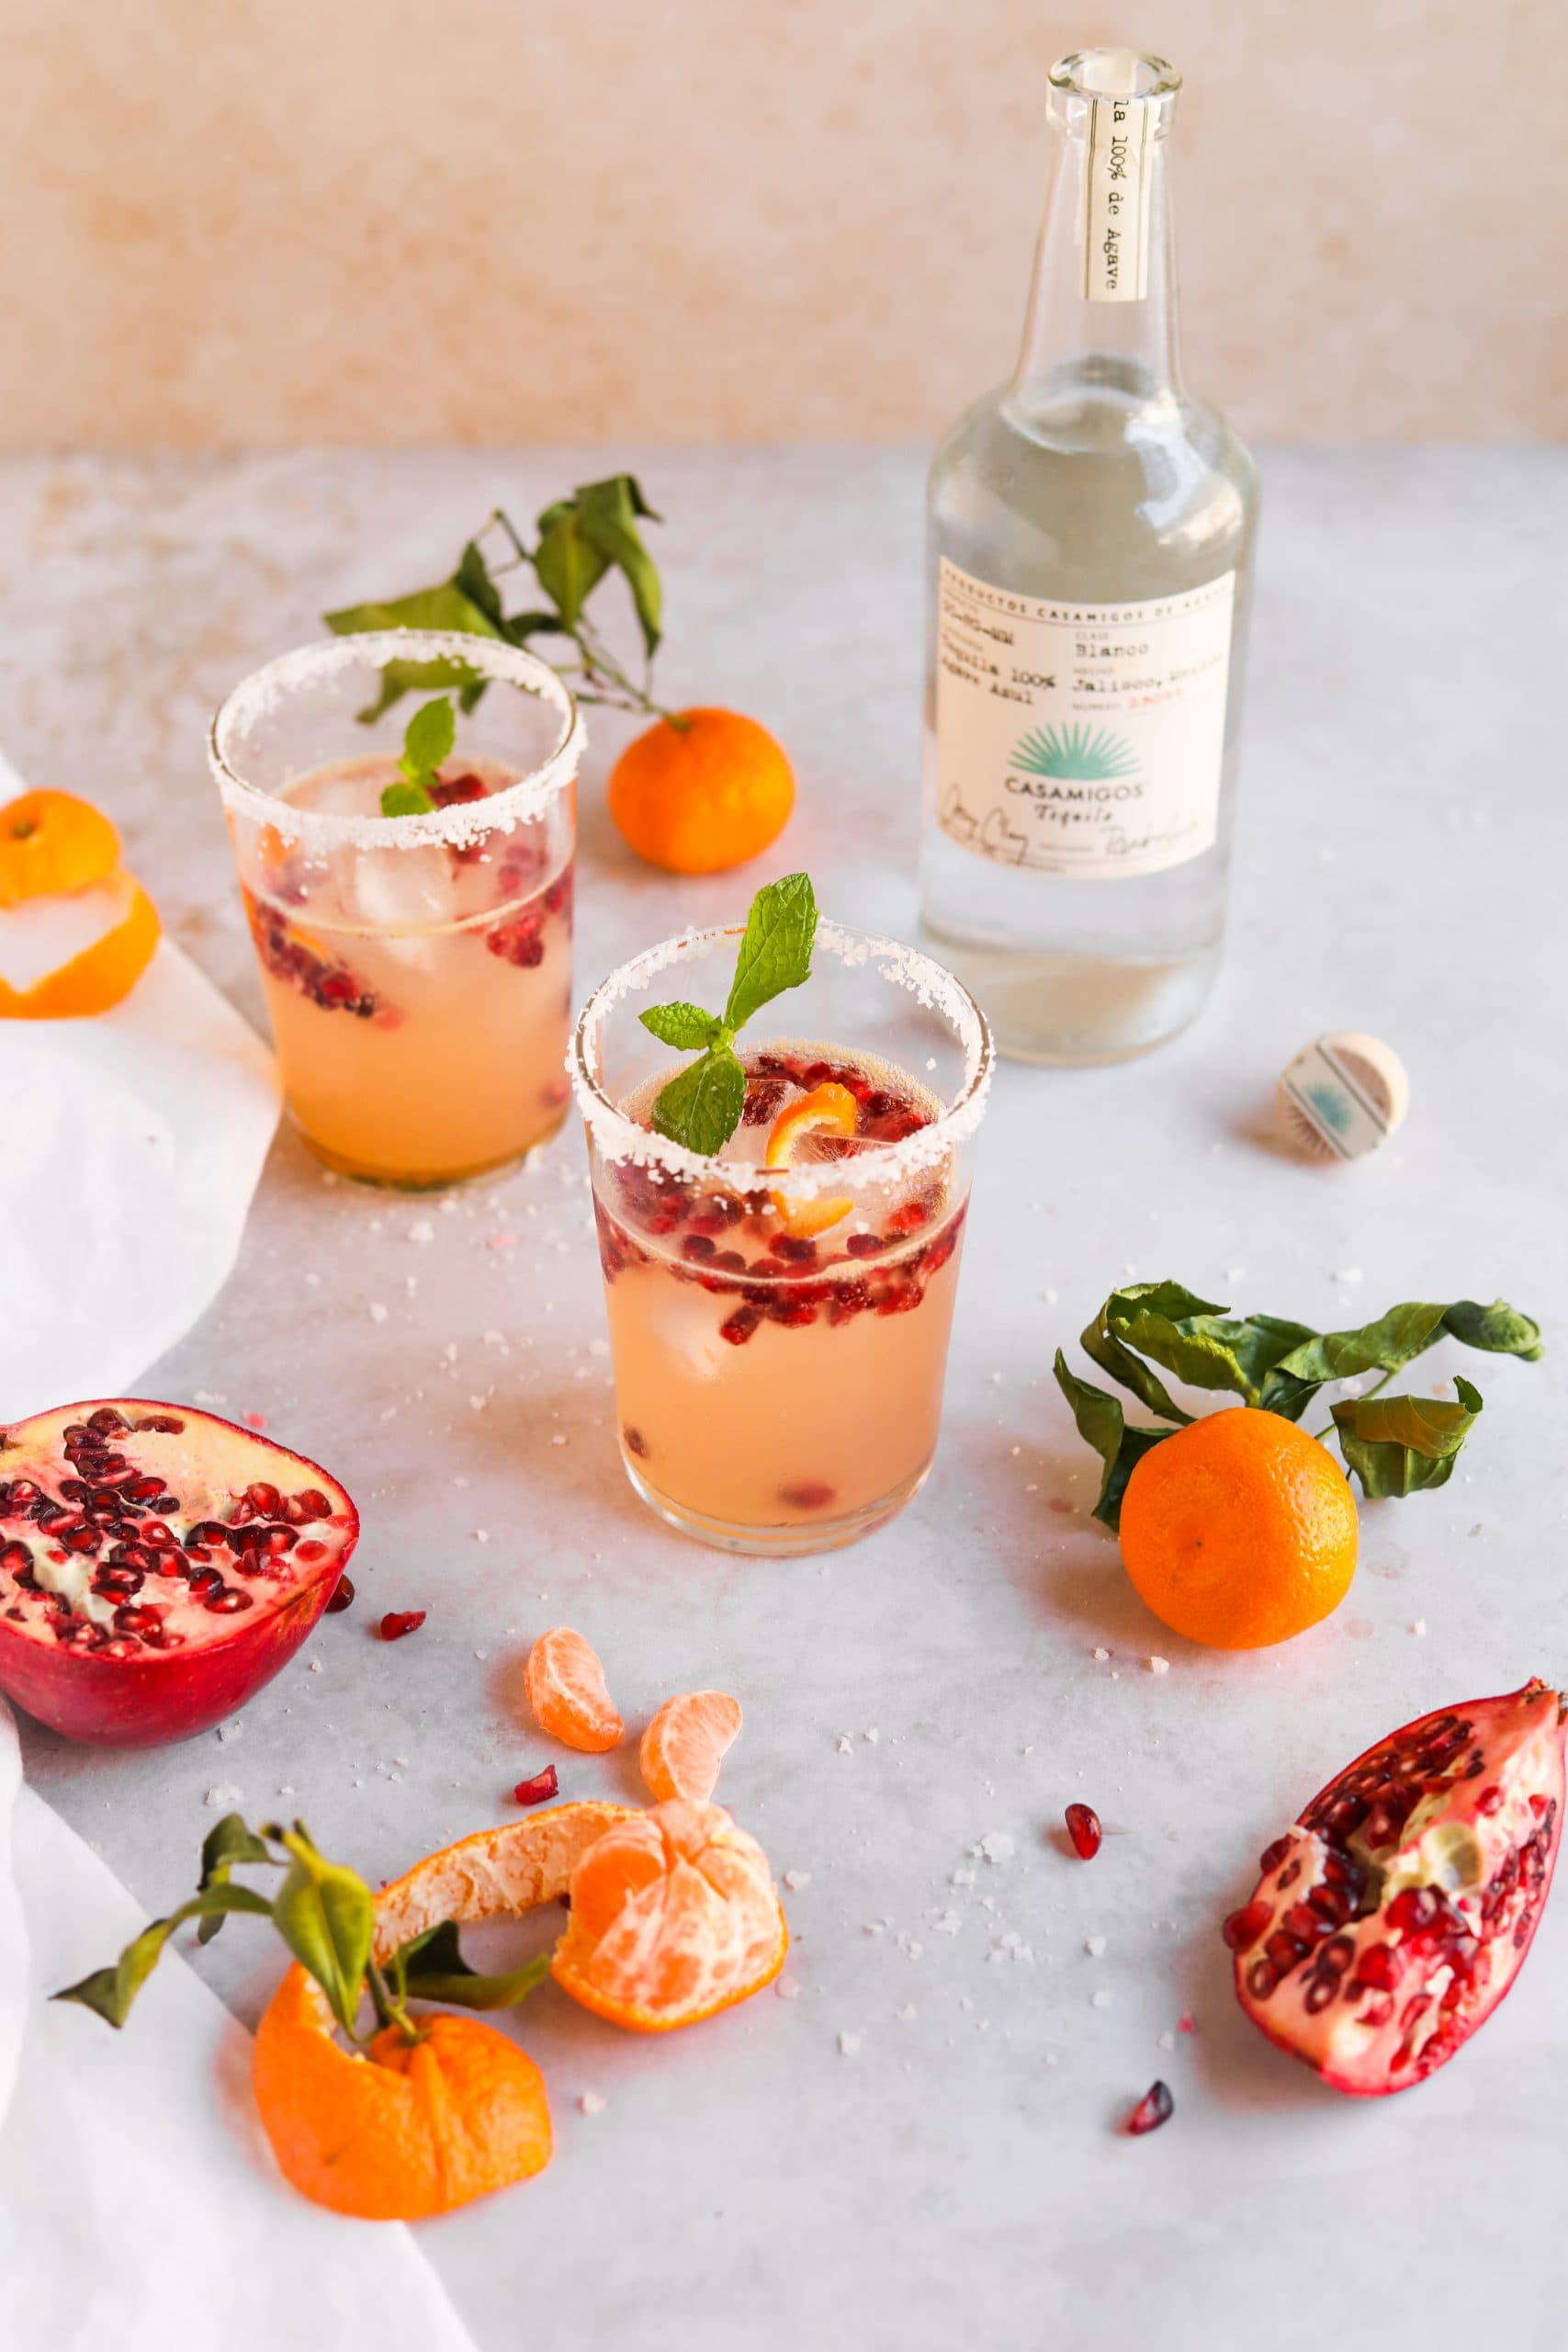 Satsuma Pomegranate Paloma with Fresh Fruit - The Heirloom Pantry